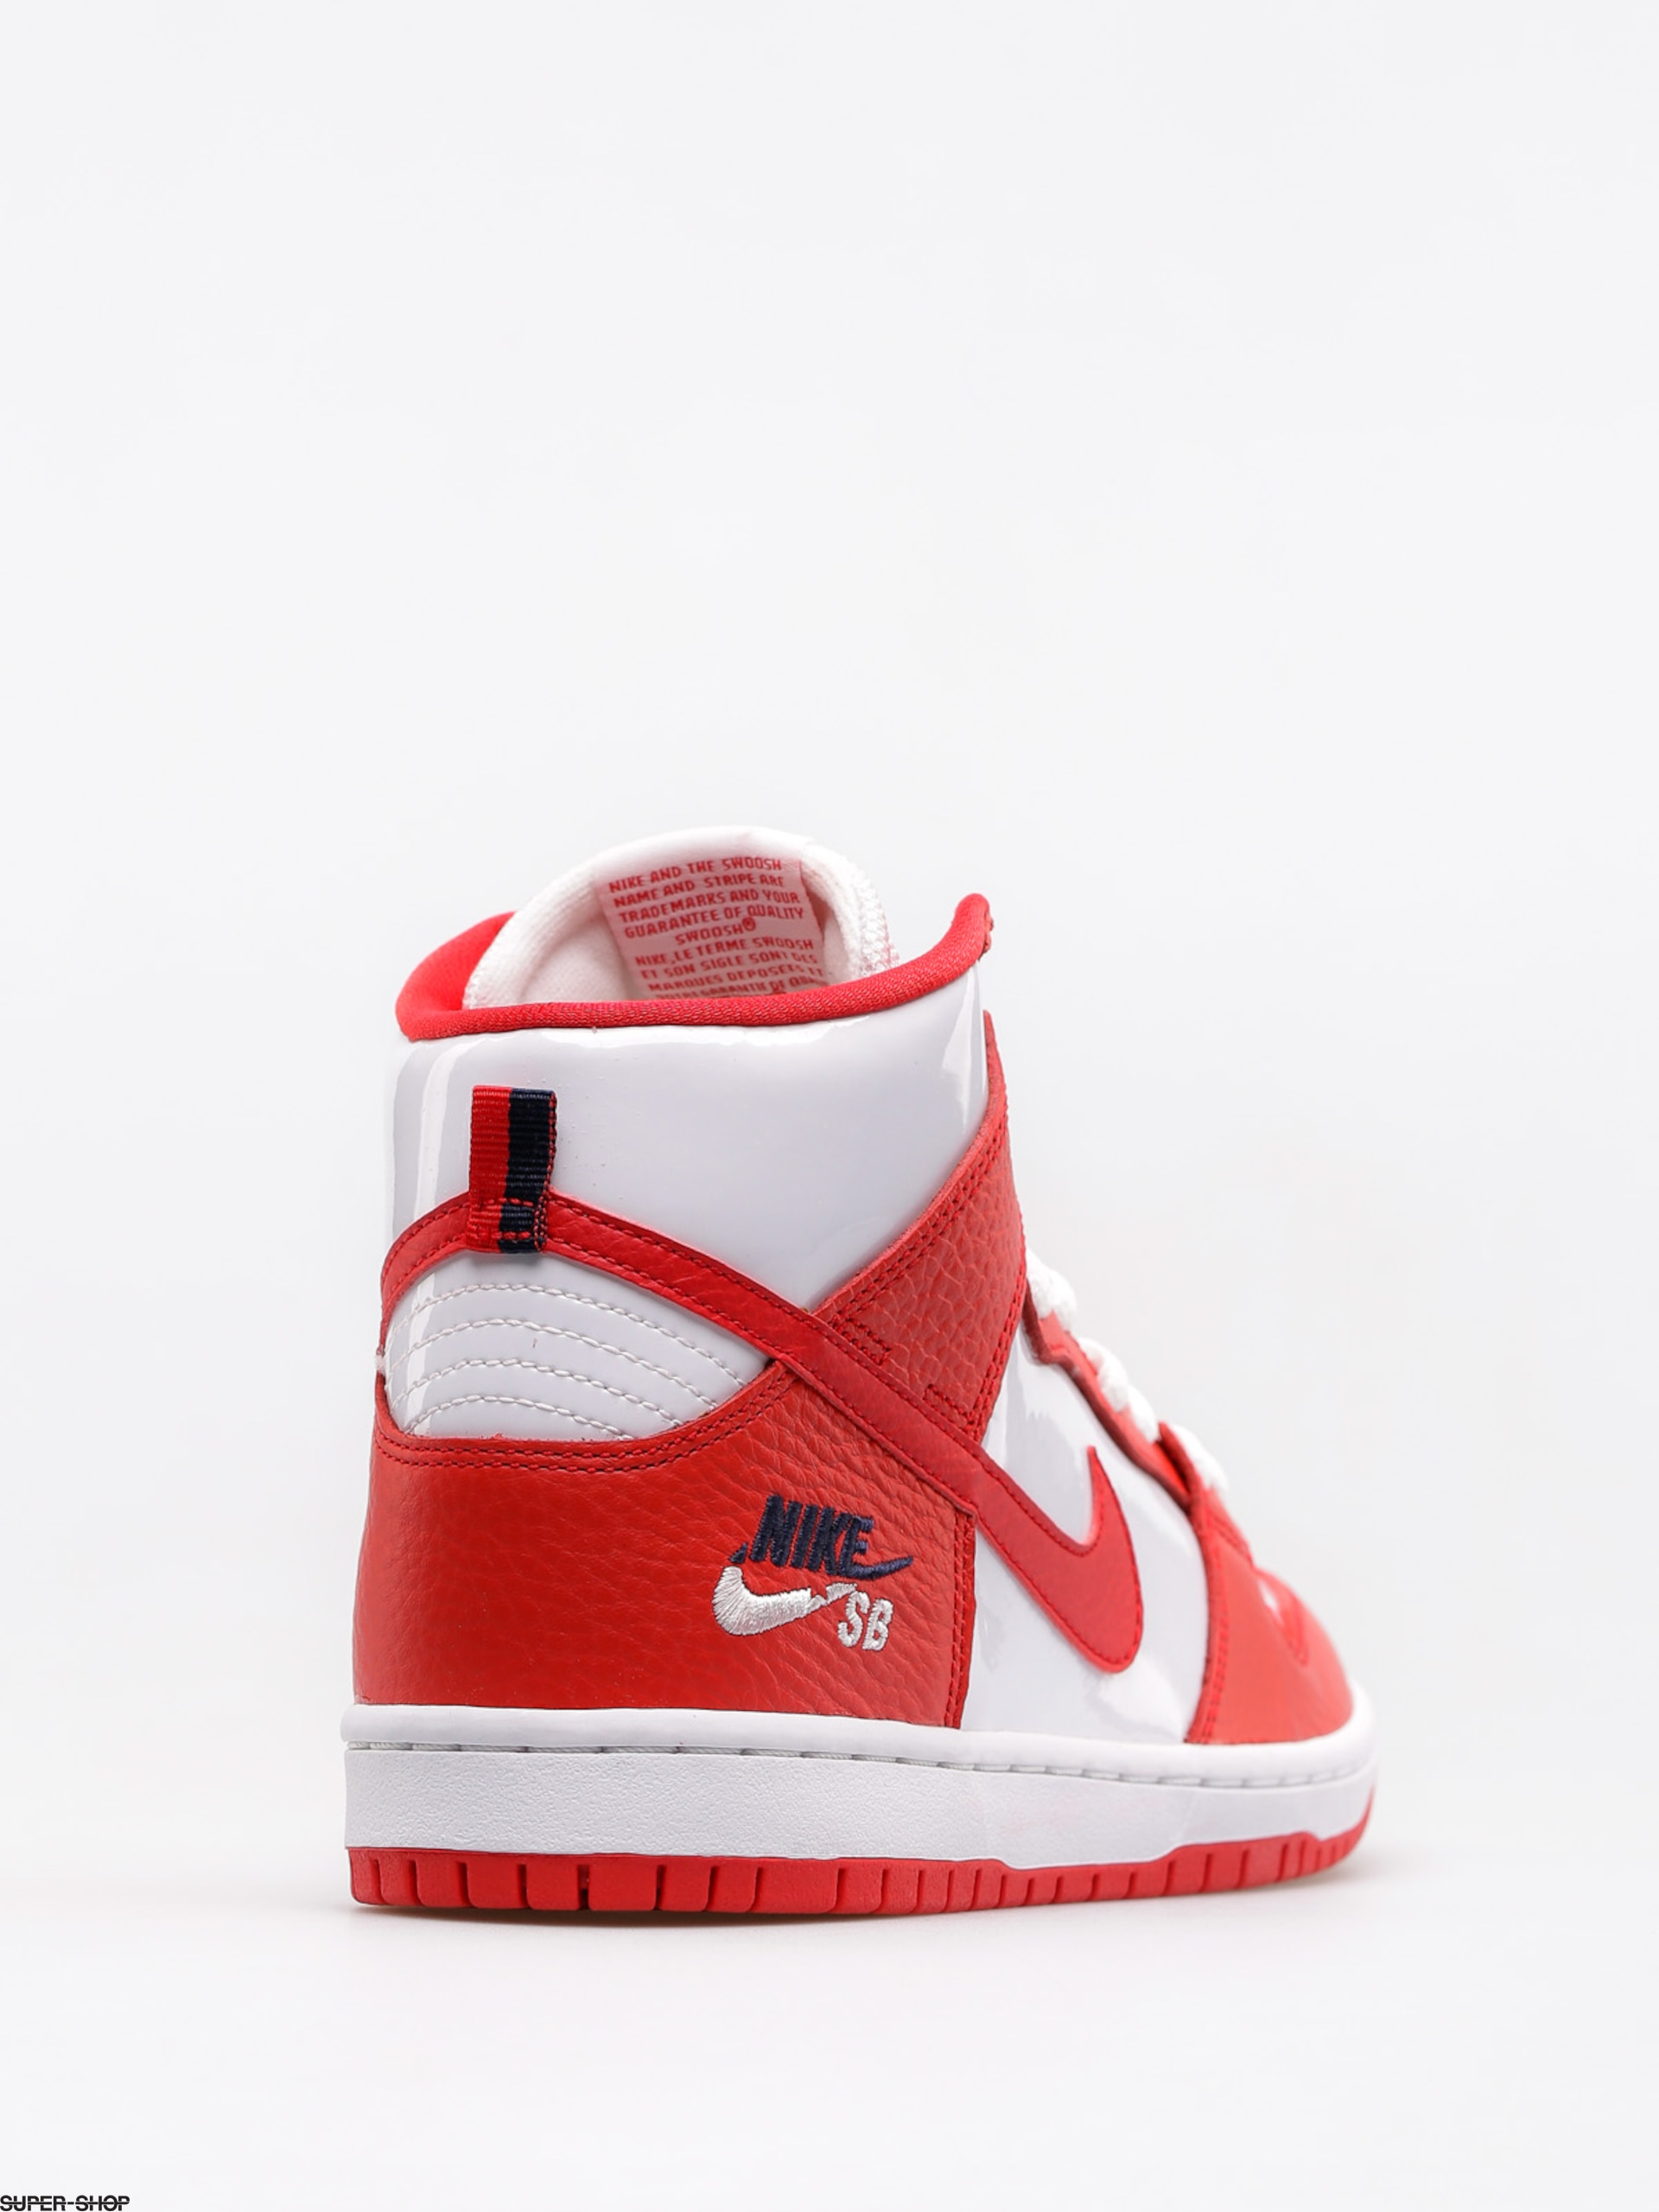 premium selection 2bd52 13f6b Nike SB Schuhe Sb Zoom Dunk High Pro (university red/university red white)